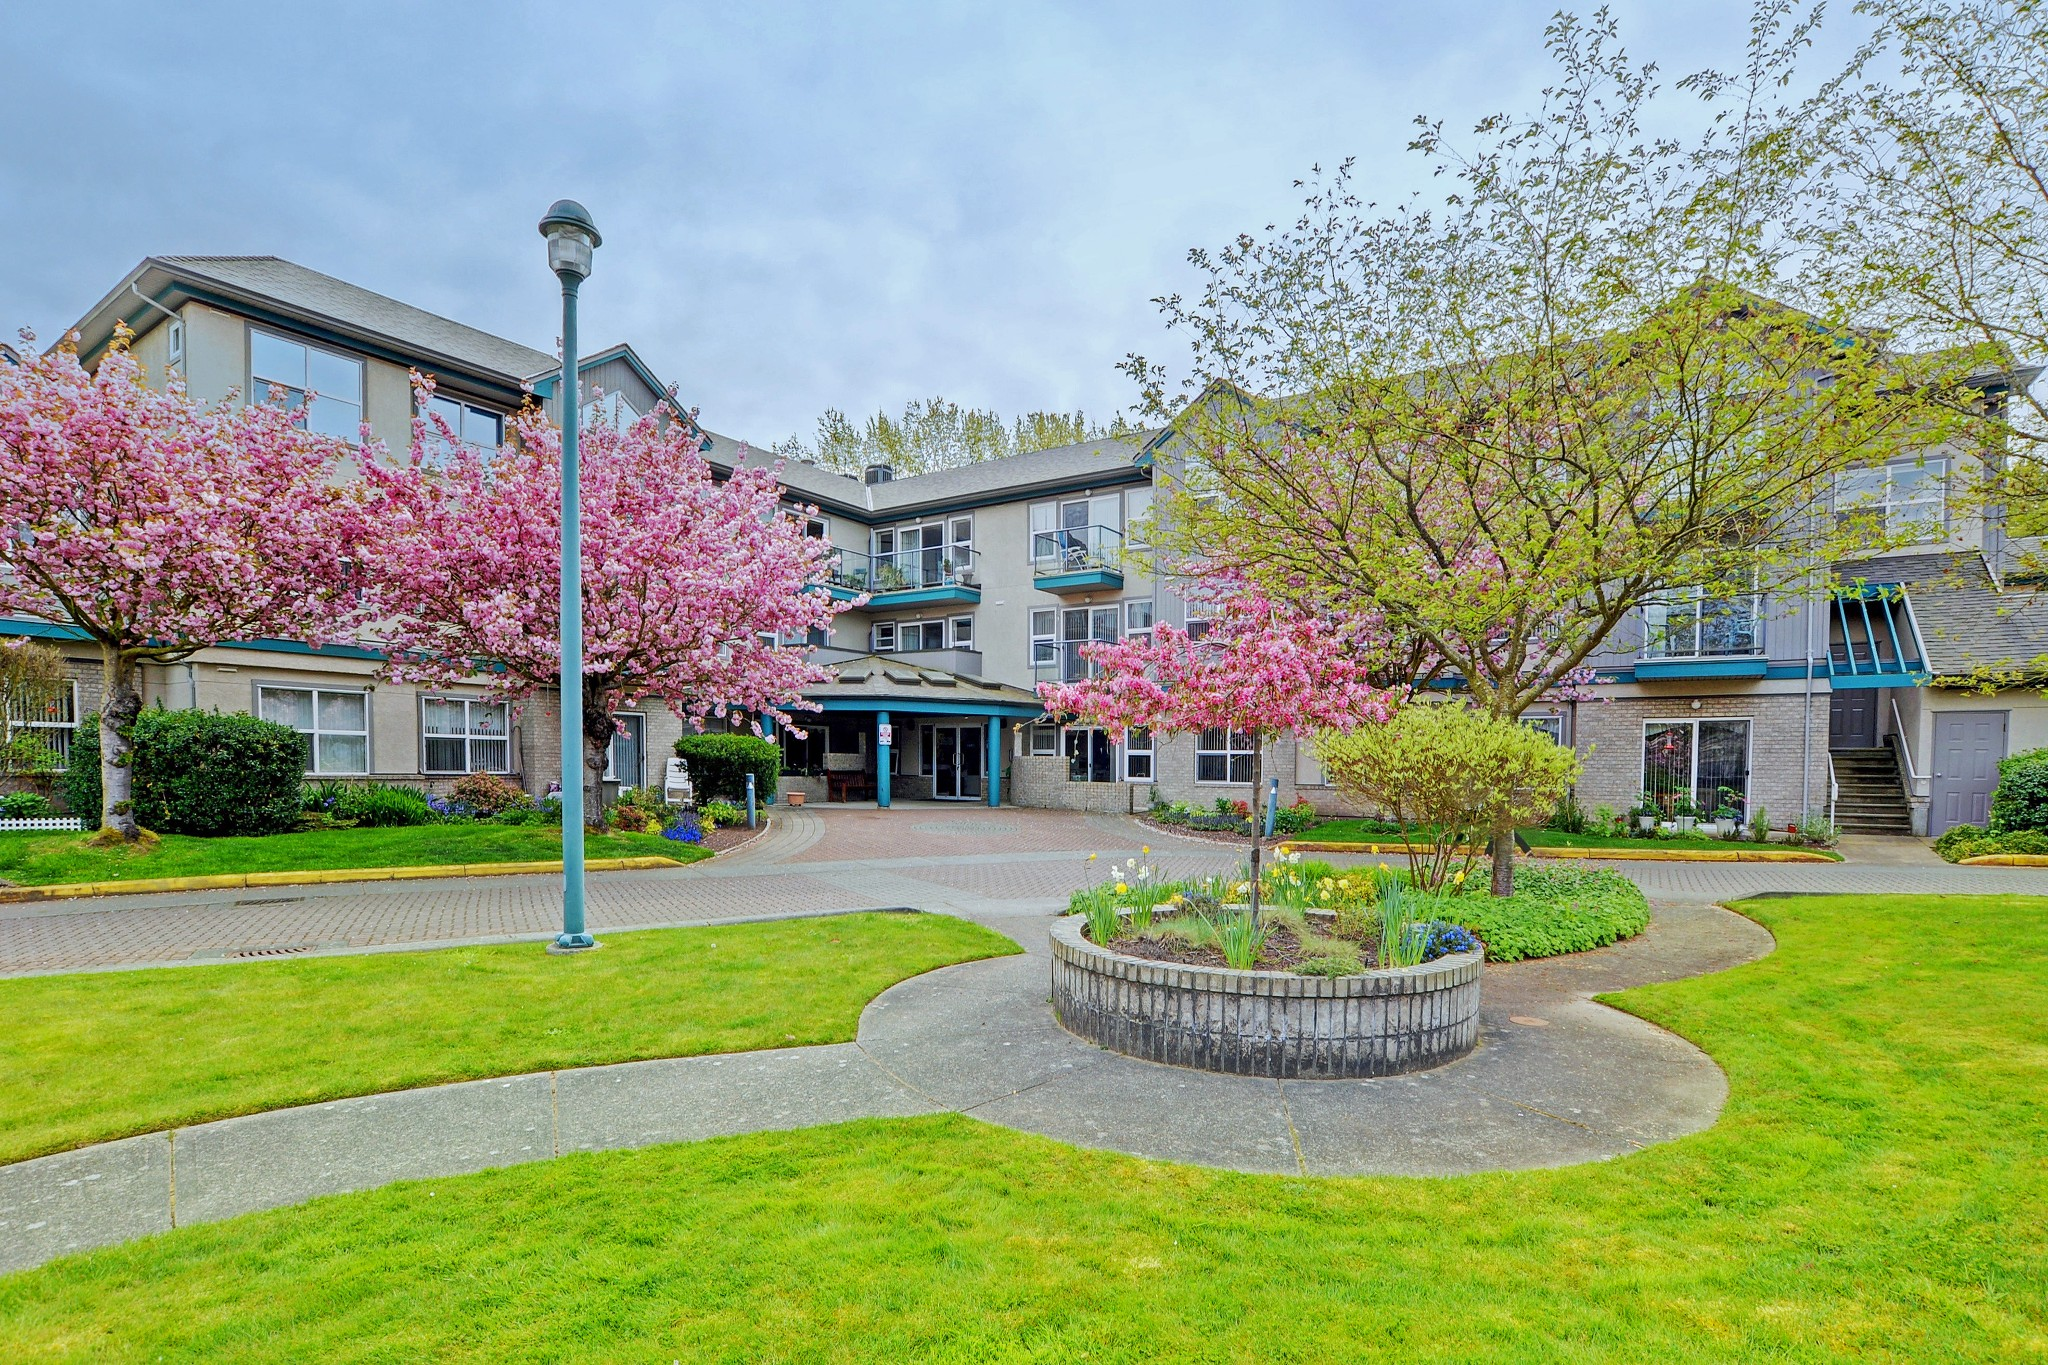 Main Photo: 301 1485 Garnet Road in VICTORIA: SE Cedar Hill Condo Apartment for sale (Saanich East)  : MLS®# 393873